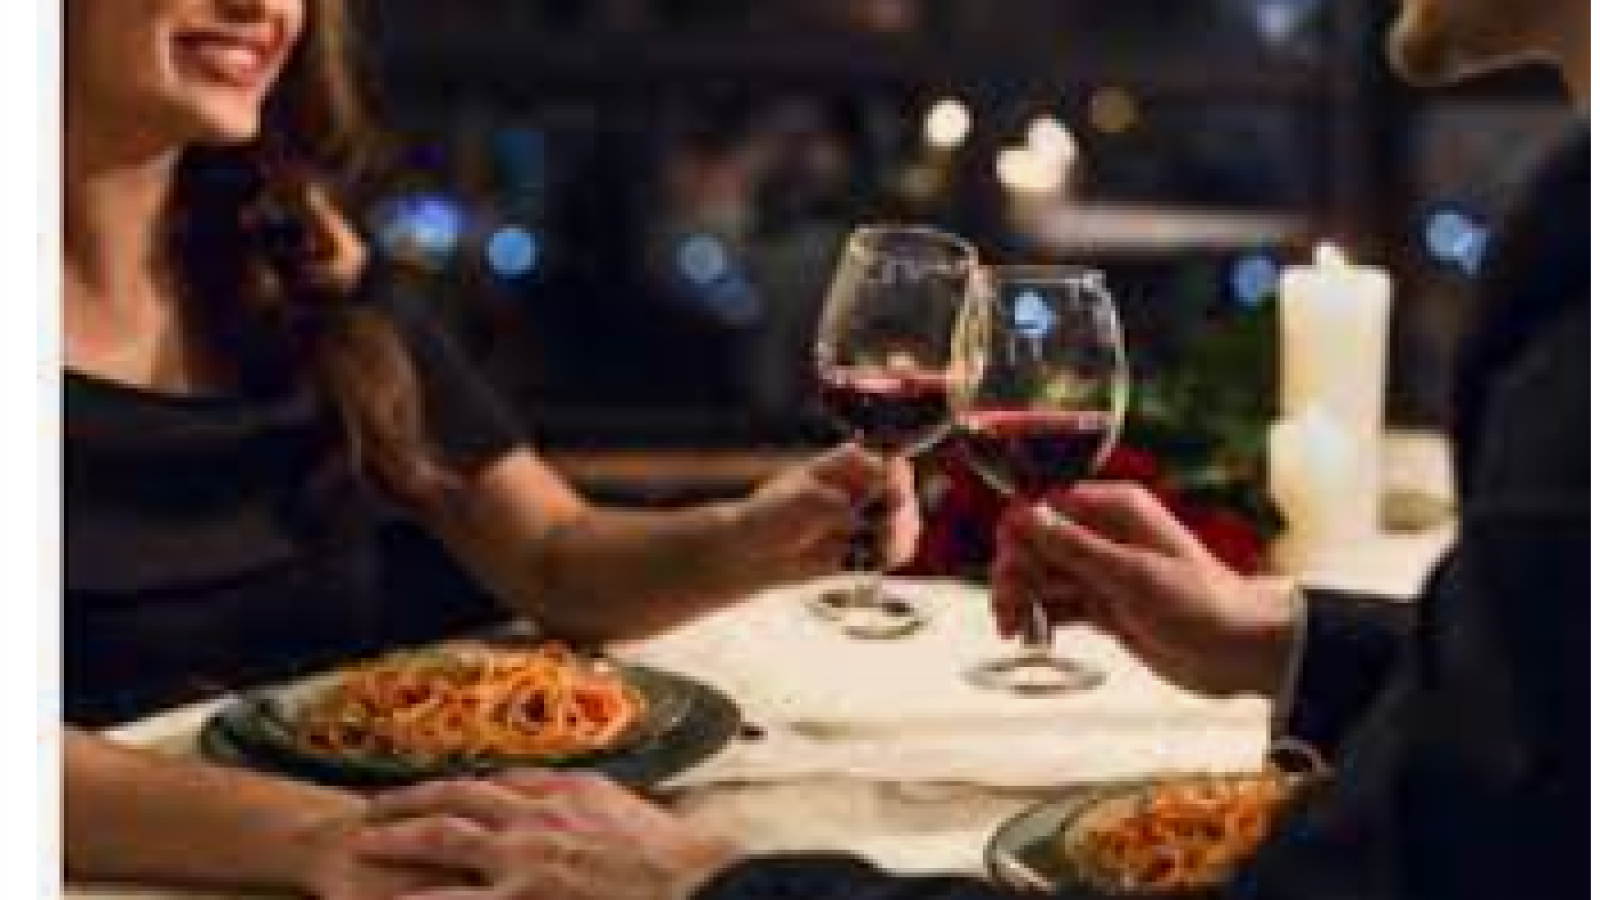 Planning-a-romantic-evening-meal2